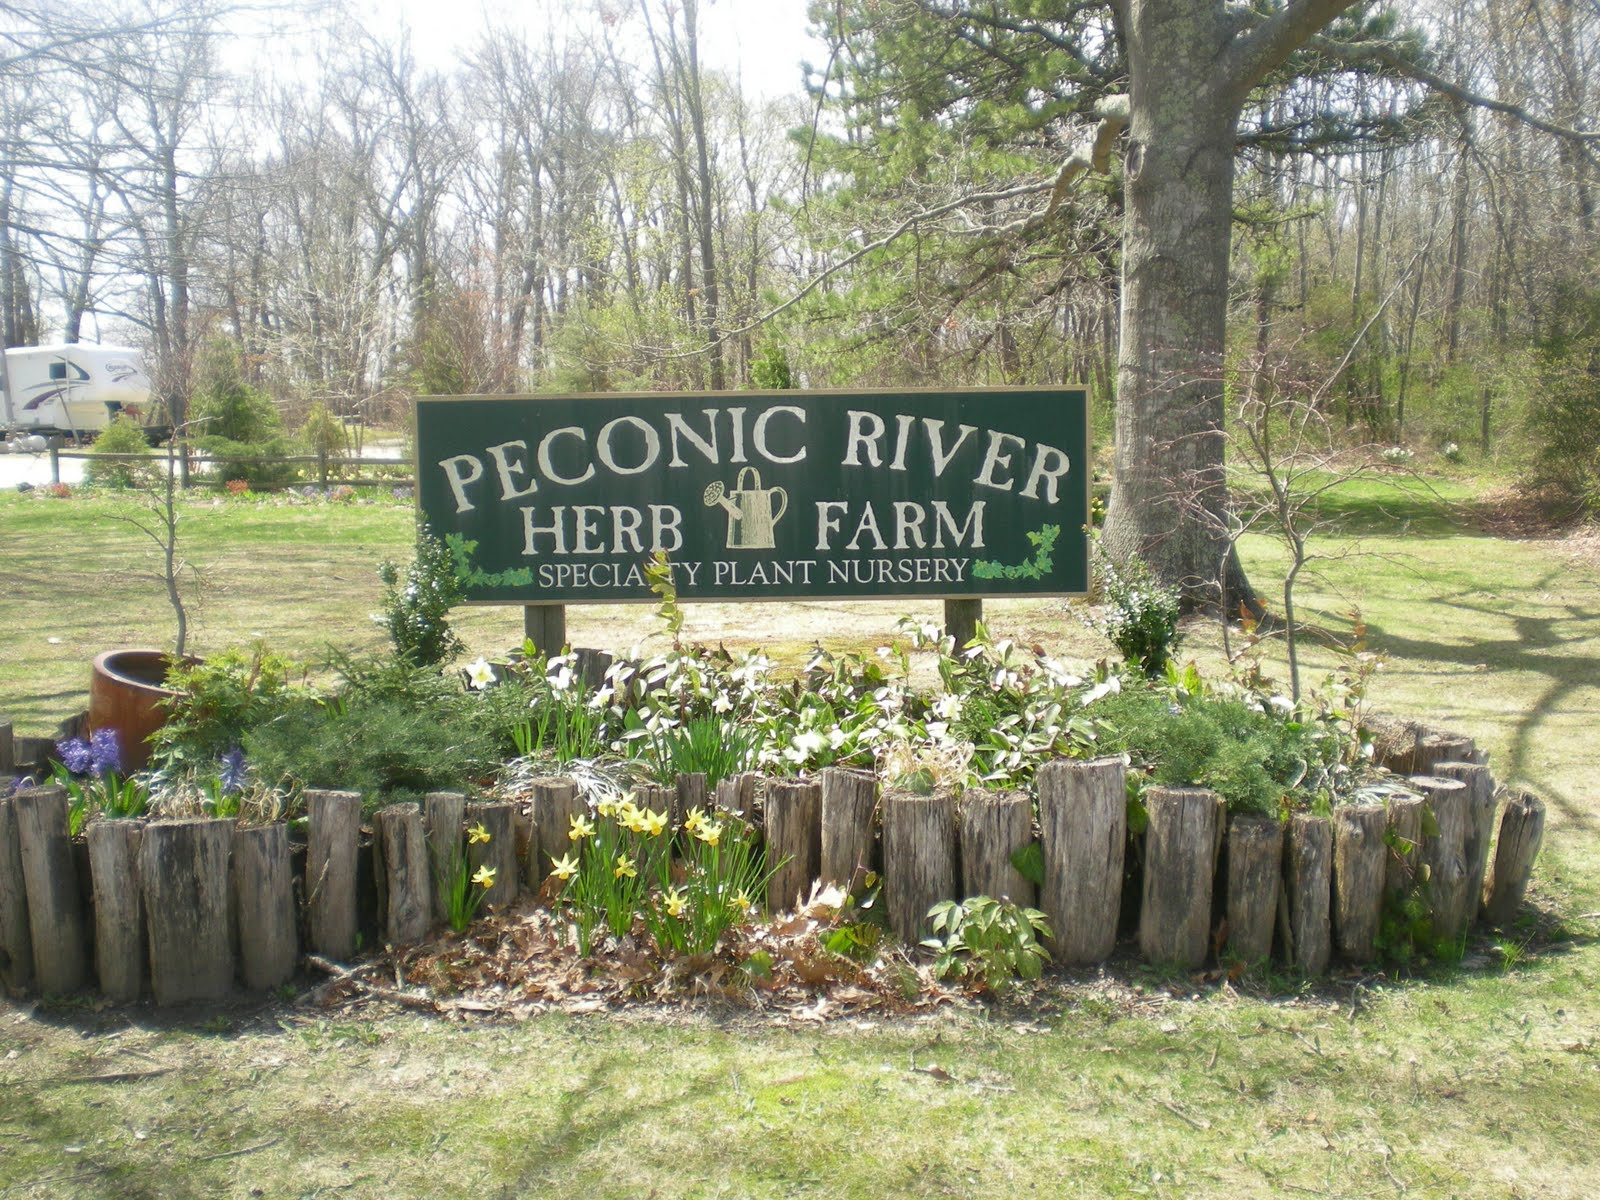 Raynham Hall Historical House Museum Long Island, Jarvis House: Peconic River Herb Farm